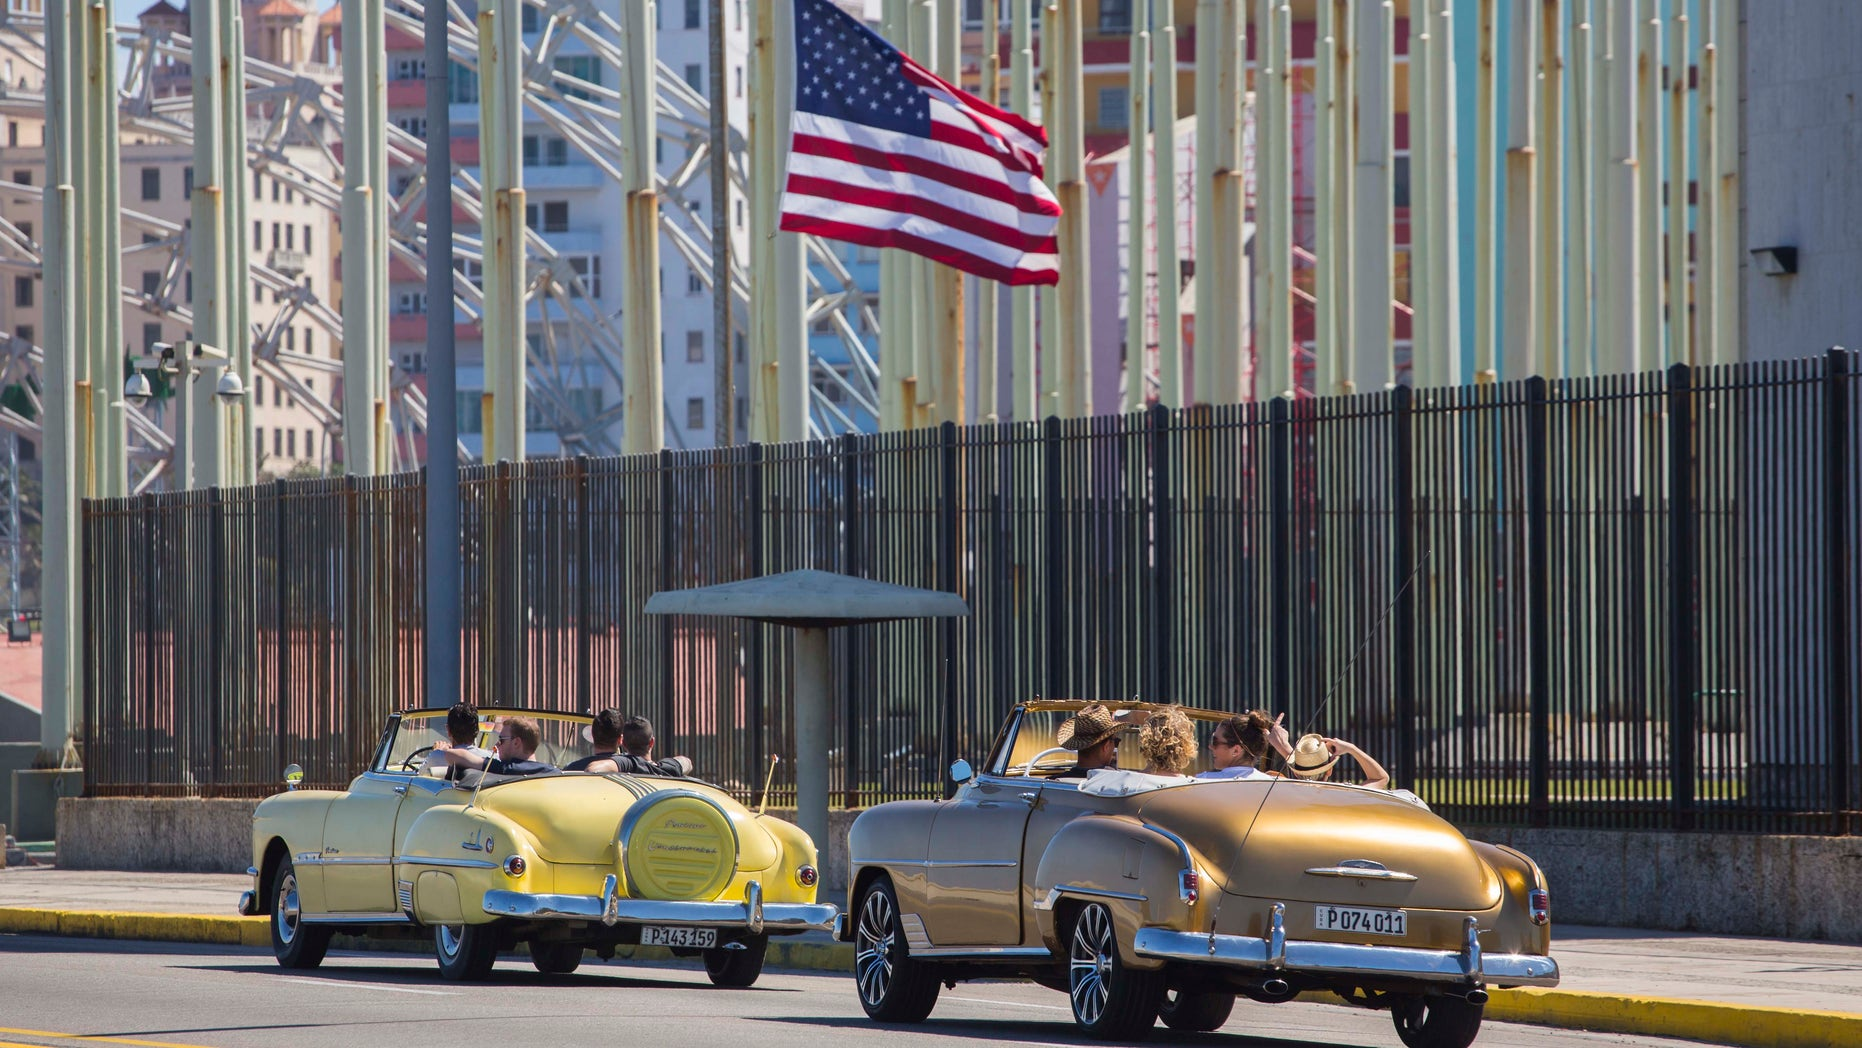 American convertibles pass by the United States embassy in Havana, Cuba, on Feb. 18, 2016.